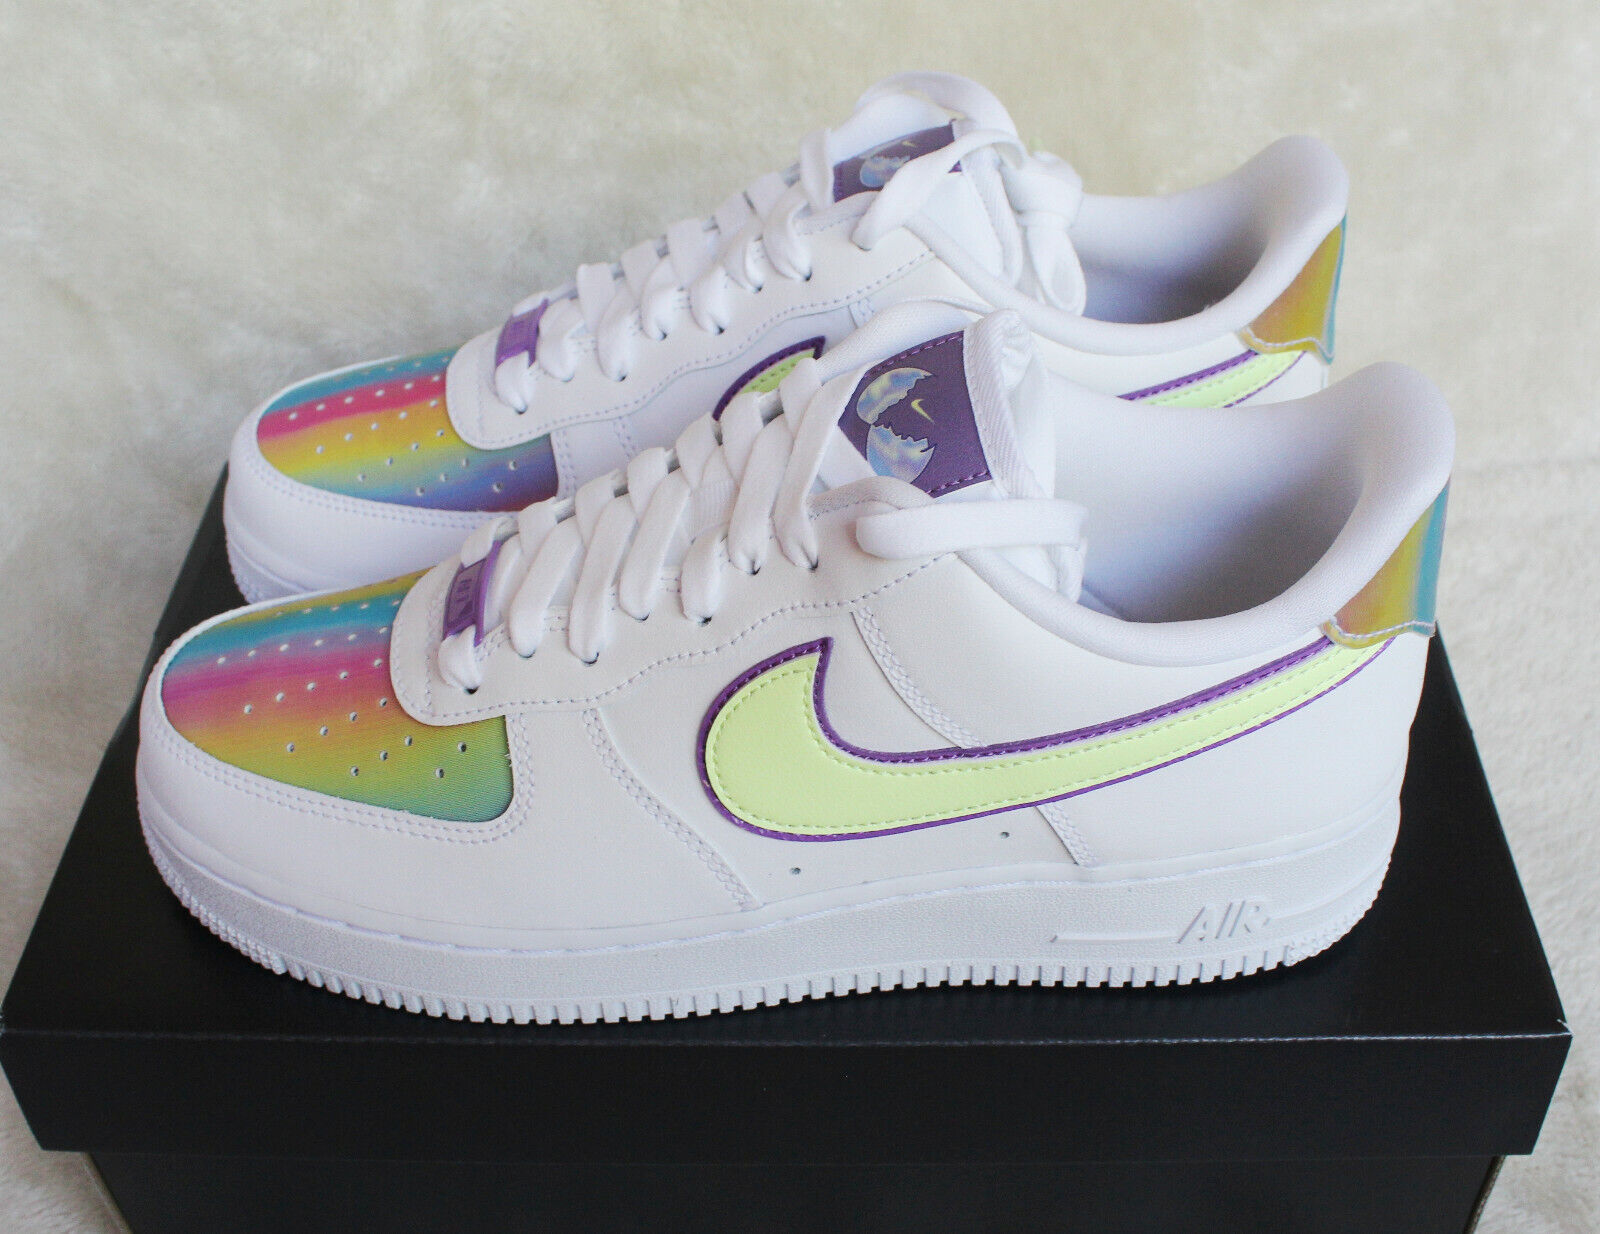 NIKE AIR FORCE 1 One Utility Low Uk Us 7 8 8.5 9 10 11 12